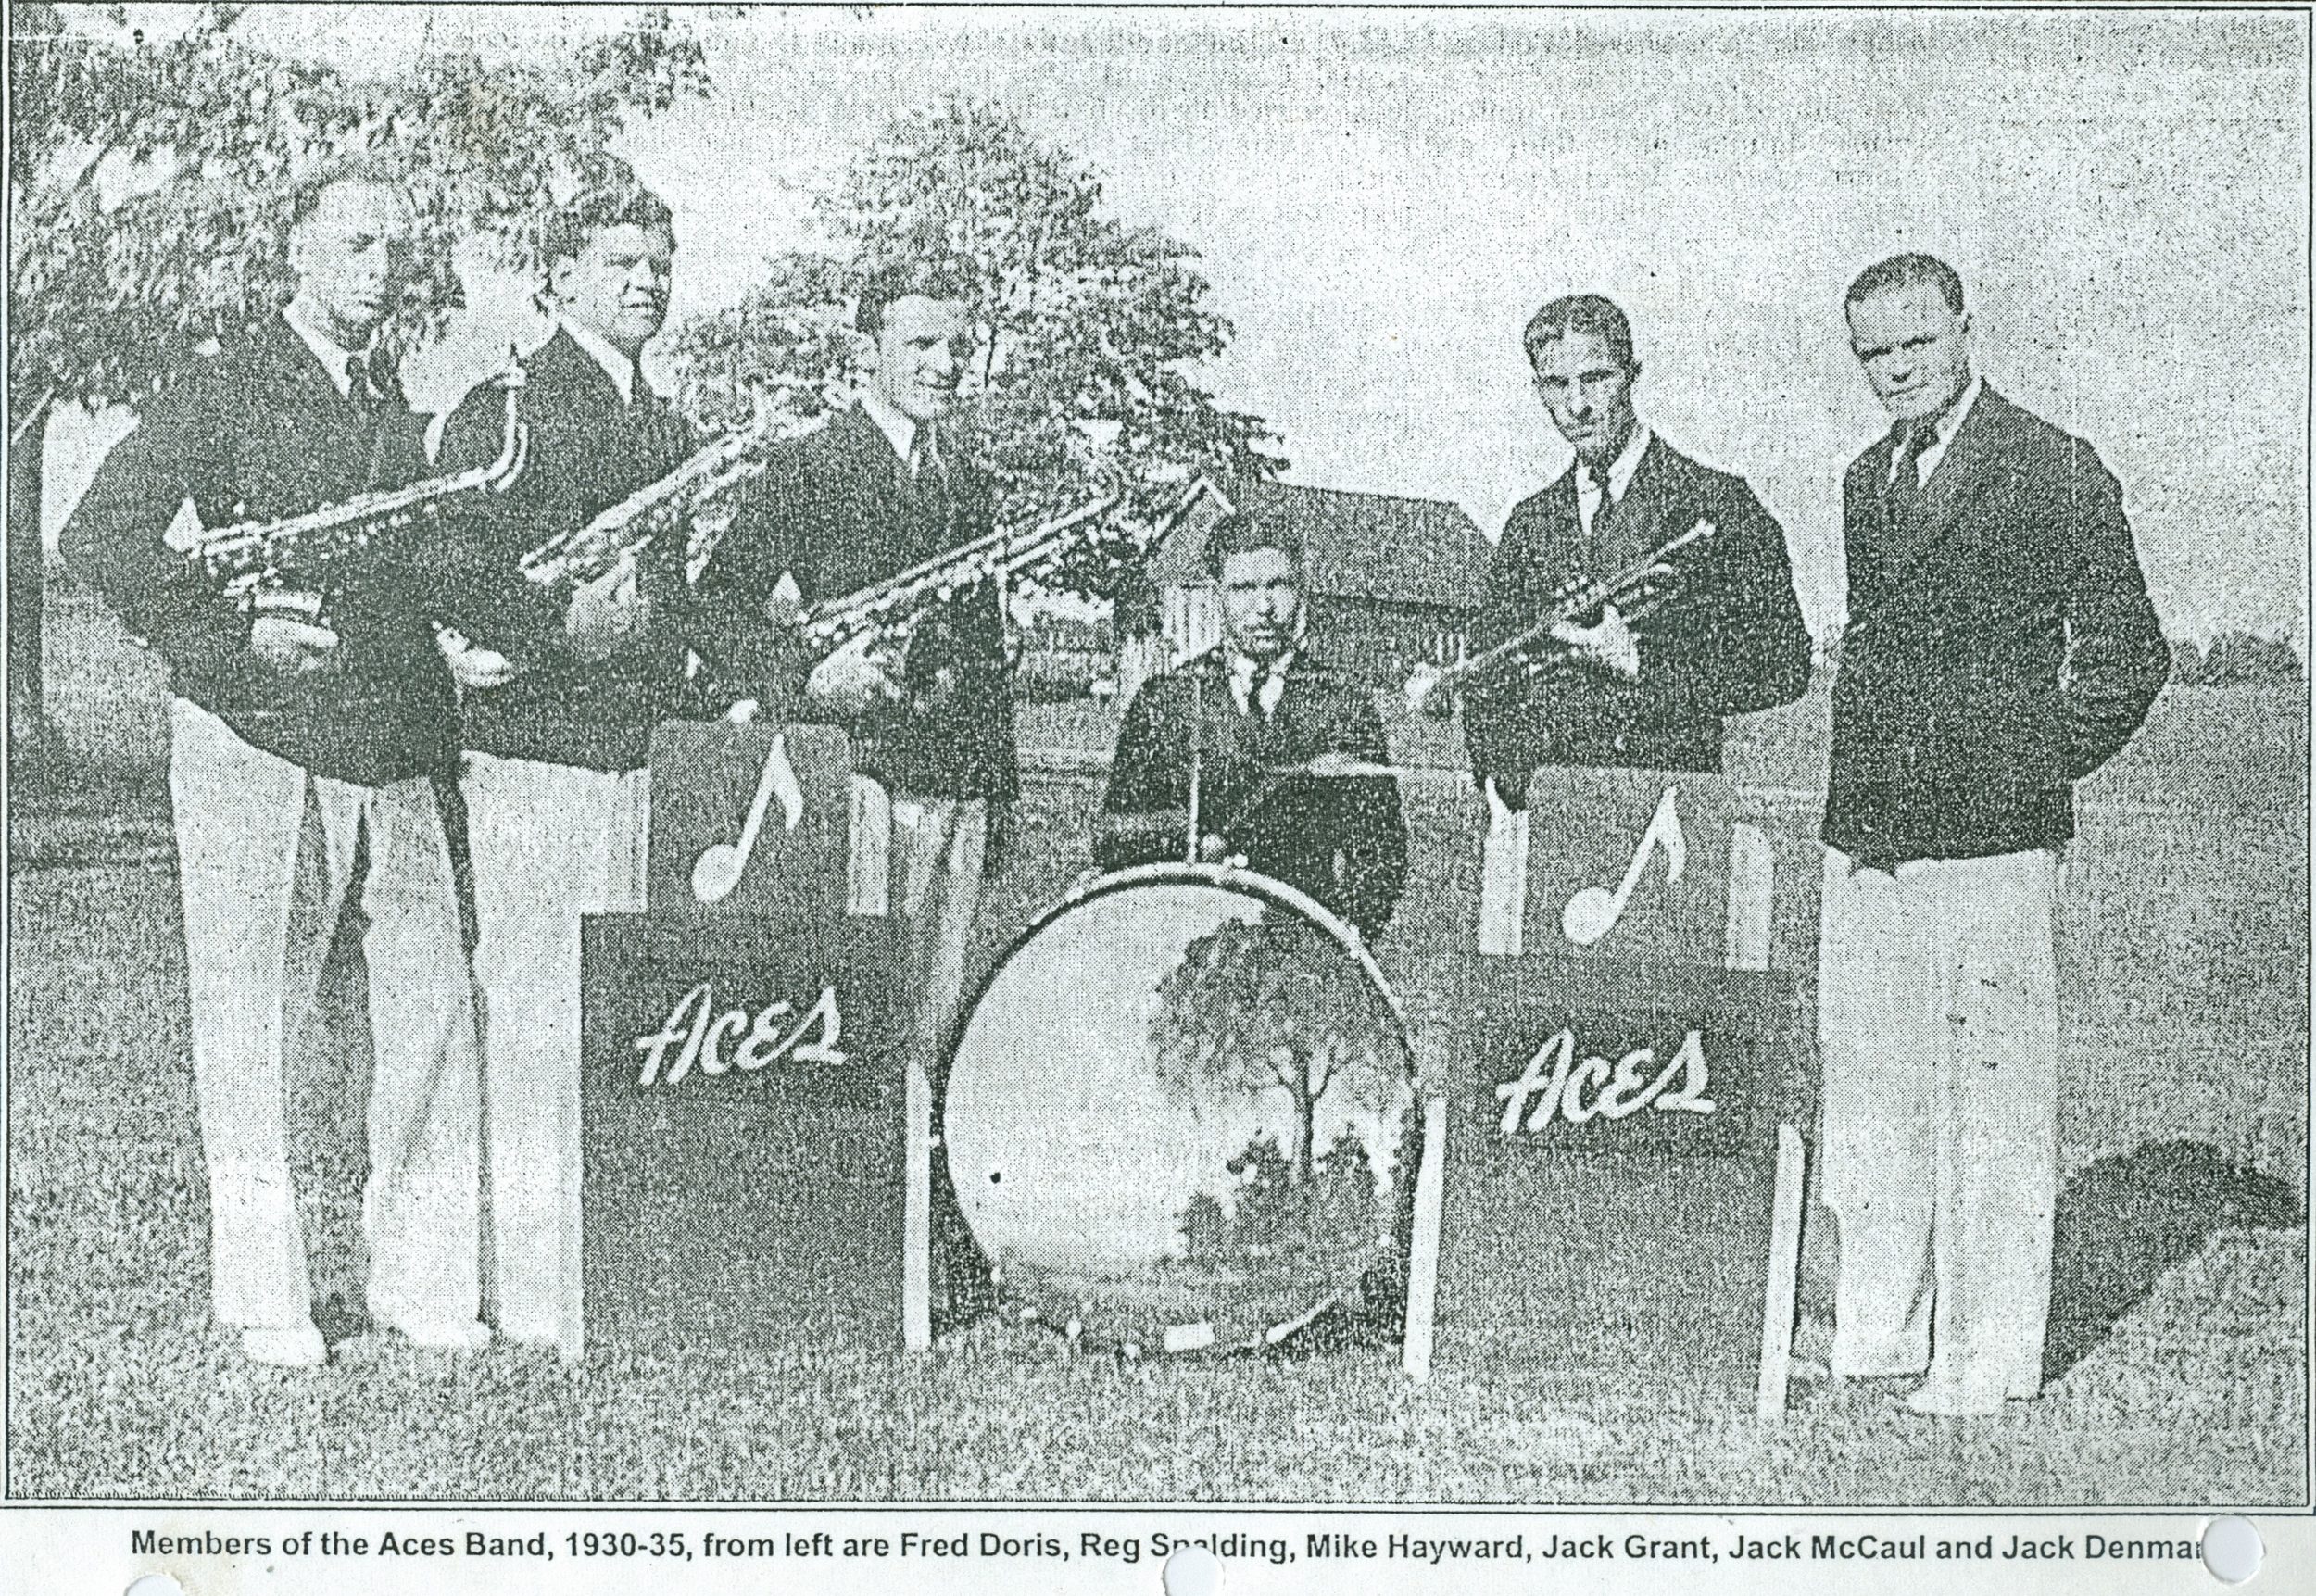 1930-35 bY 1940, jACK dENMARK HAD SPLIT OFF AND HAD HIS OWN ORCHESTRA, AS EVIDENCED BY THE BADMINTON DANCE SHOWN ON RIGHT